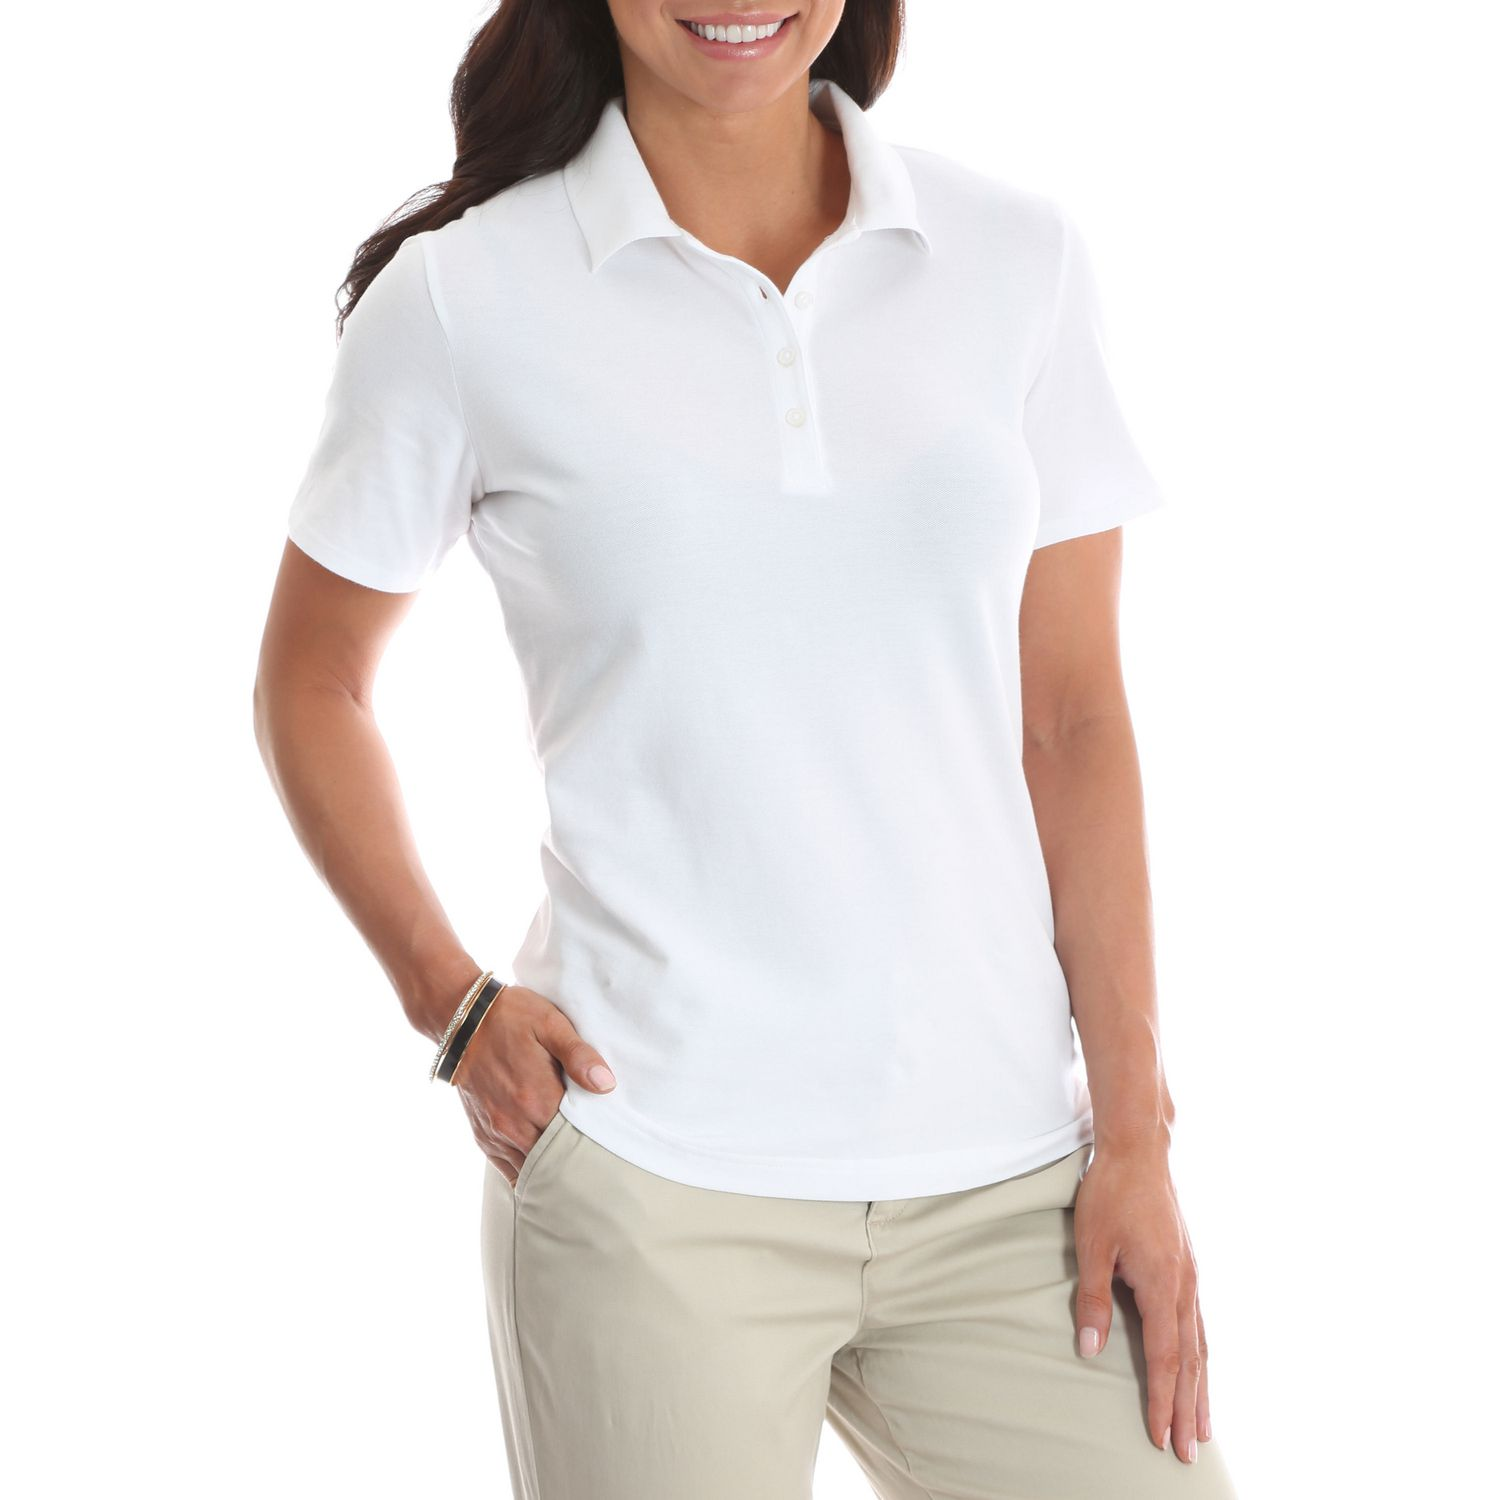 a5cfa7f5f748a Walmart Polo Shirts Womens - Cotswold Hire